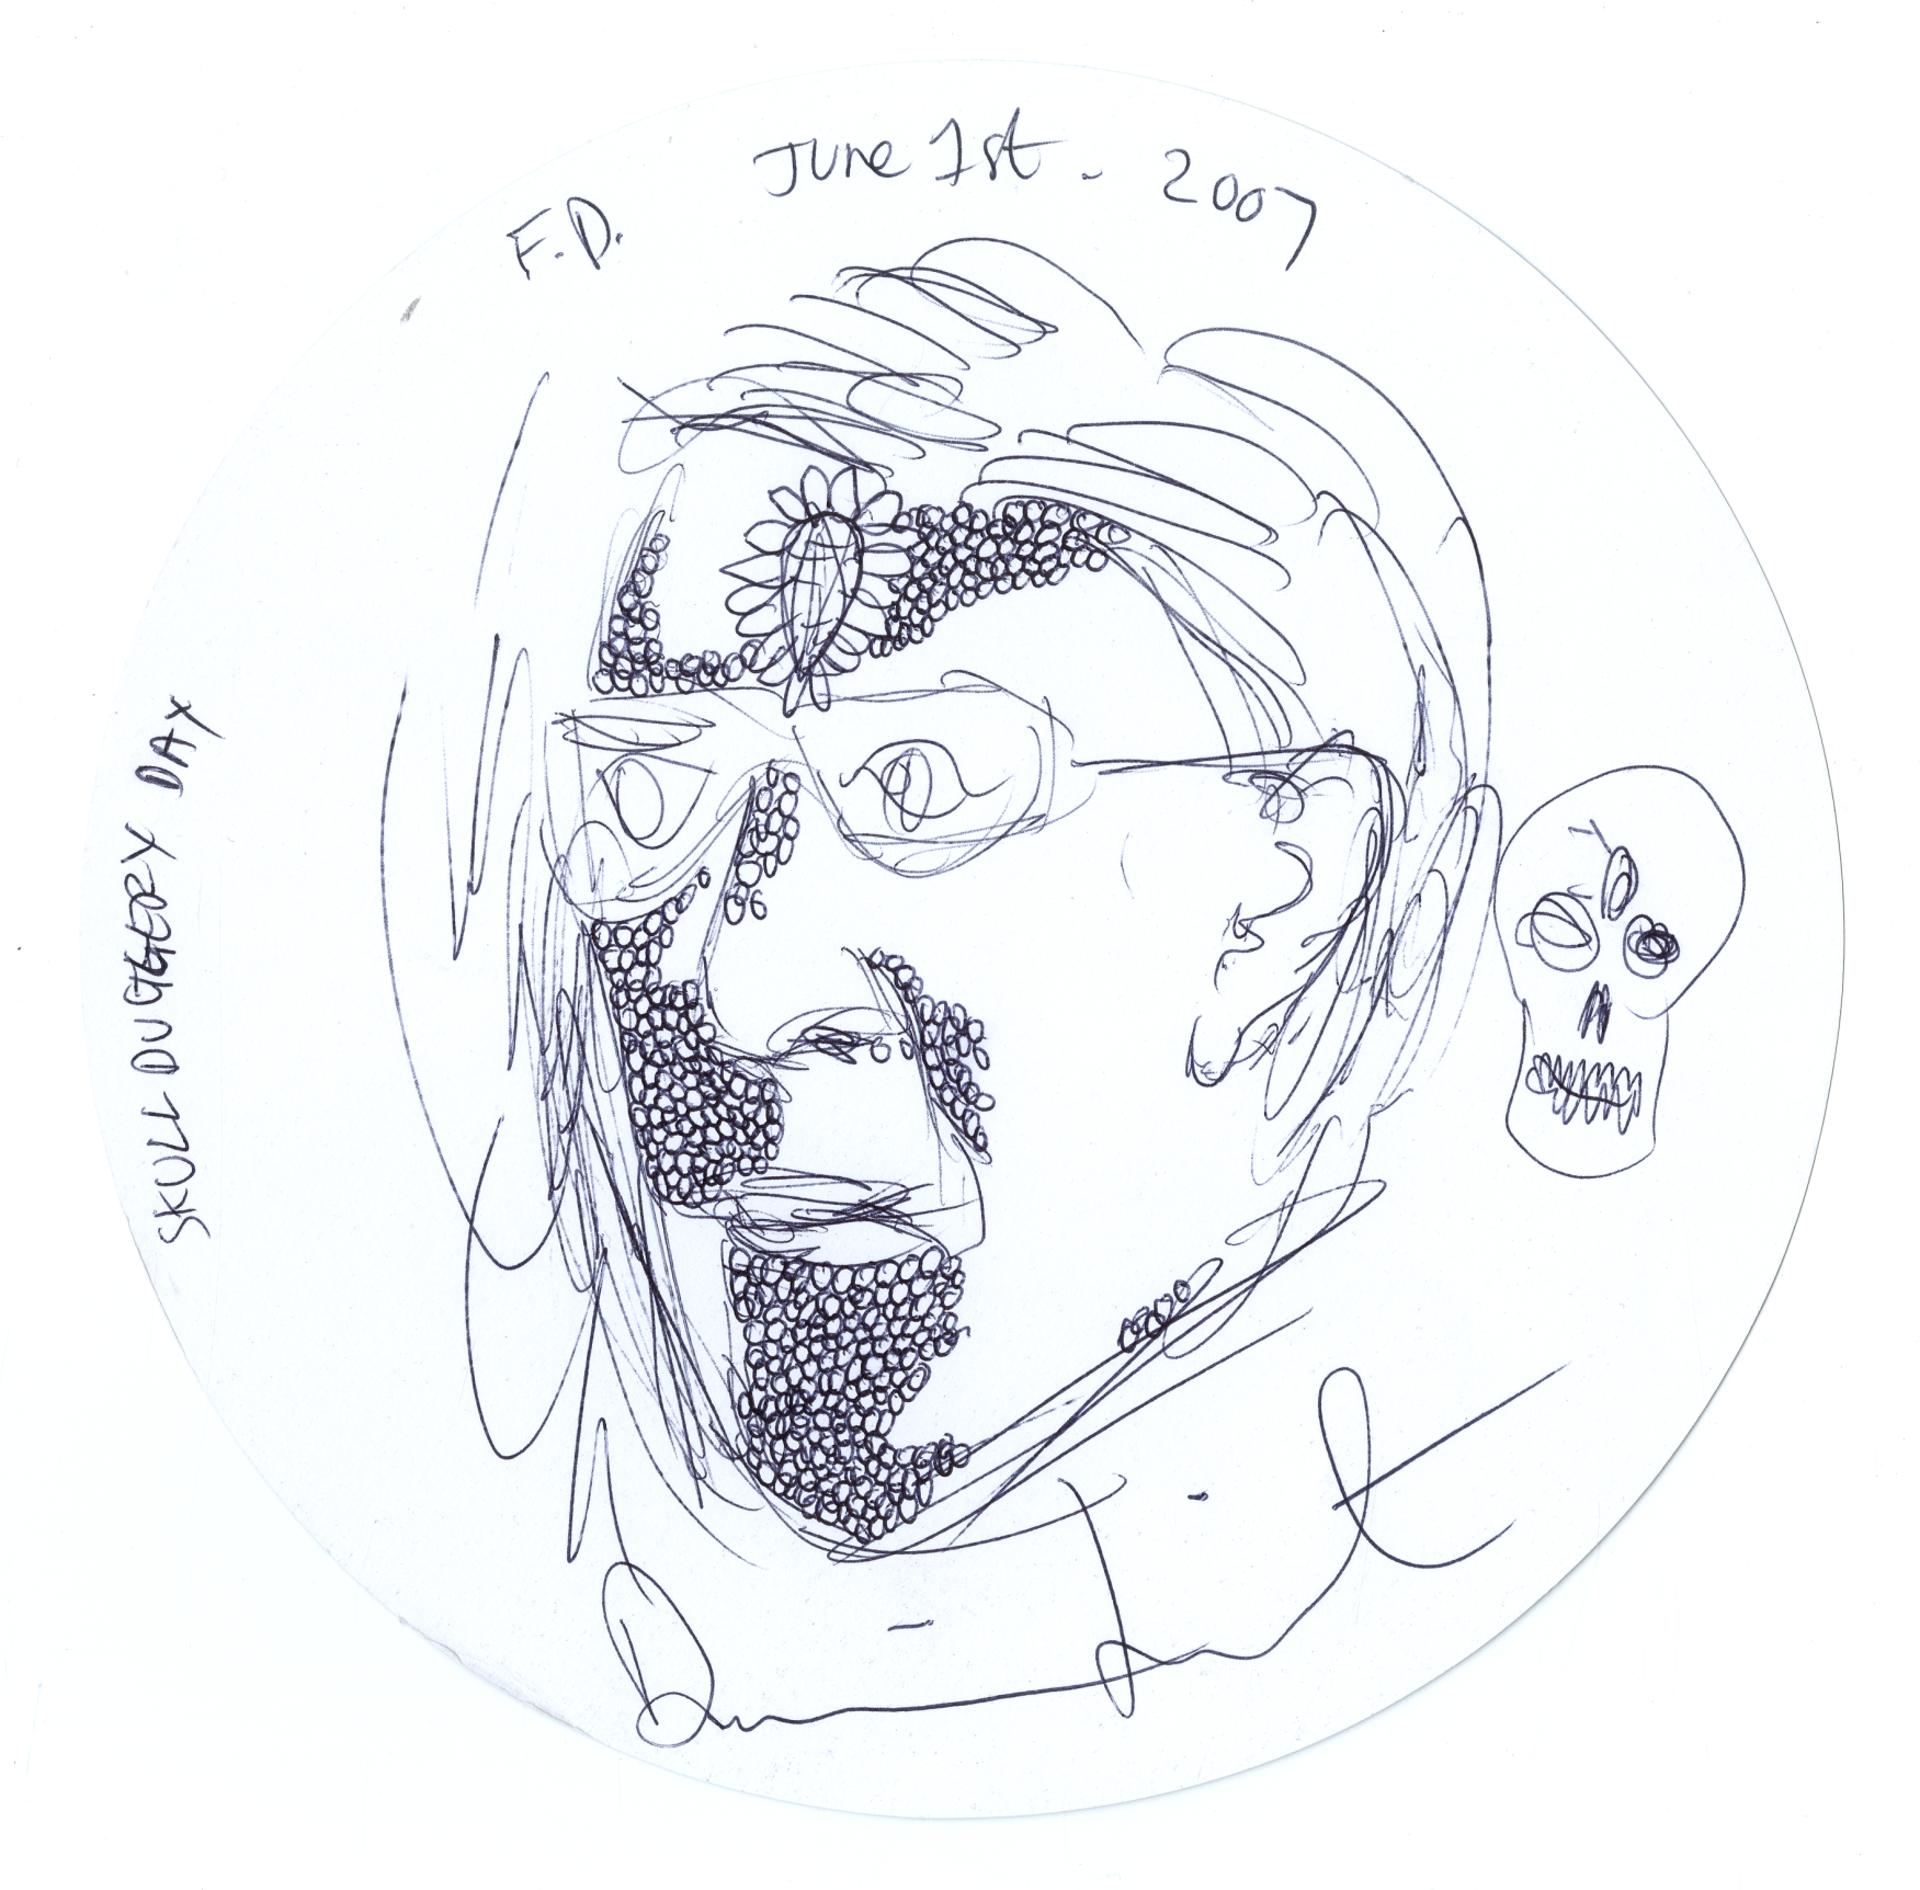 Damien Hirst Portraits With Coffee Stains Given To British Museum The Irish News